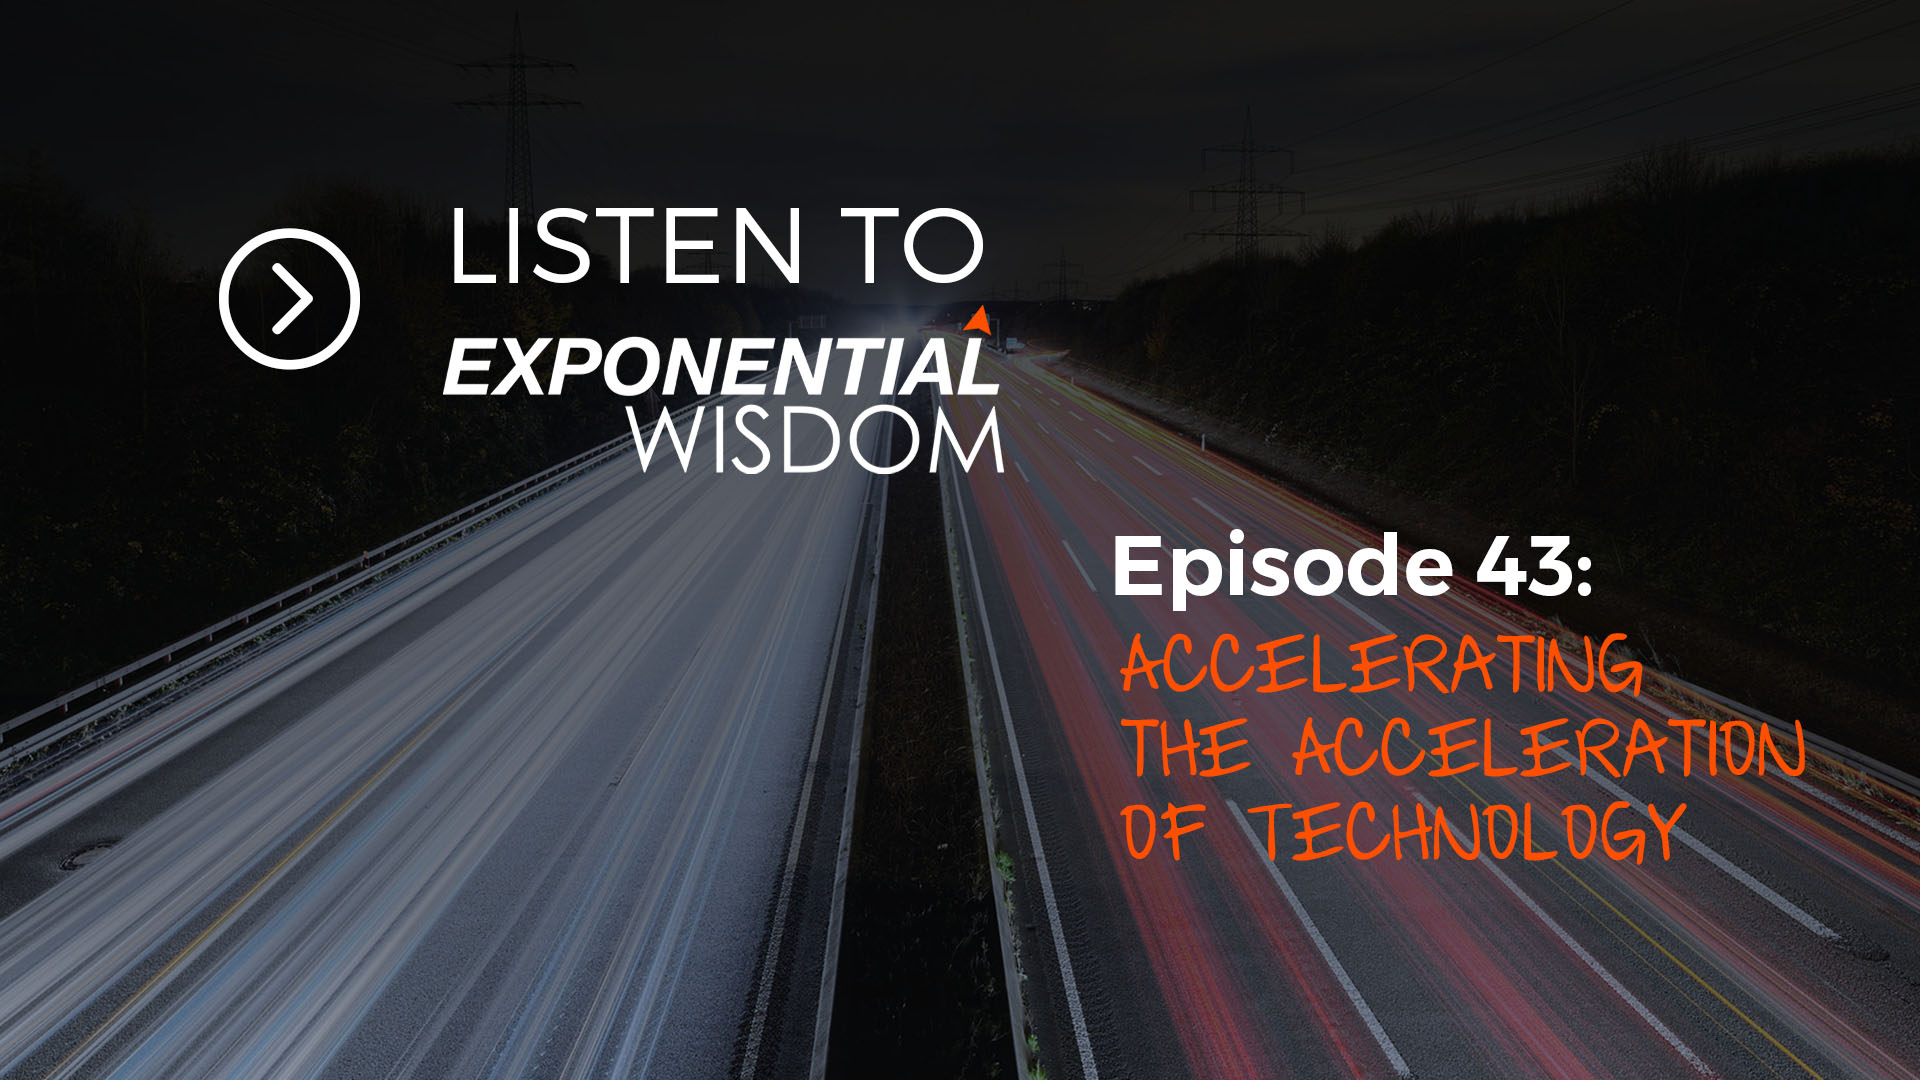 Accelerating the Acceleration of Technology